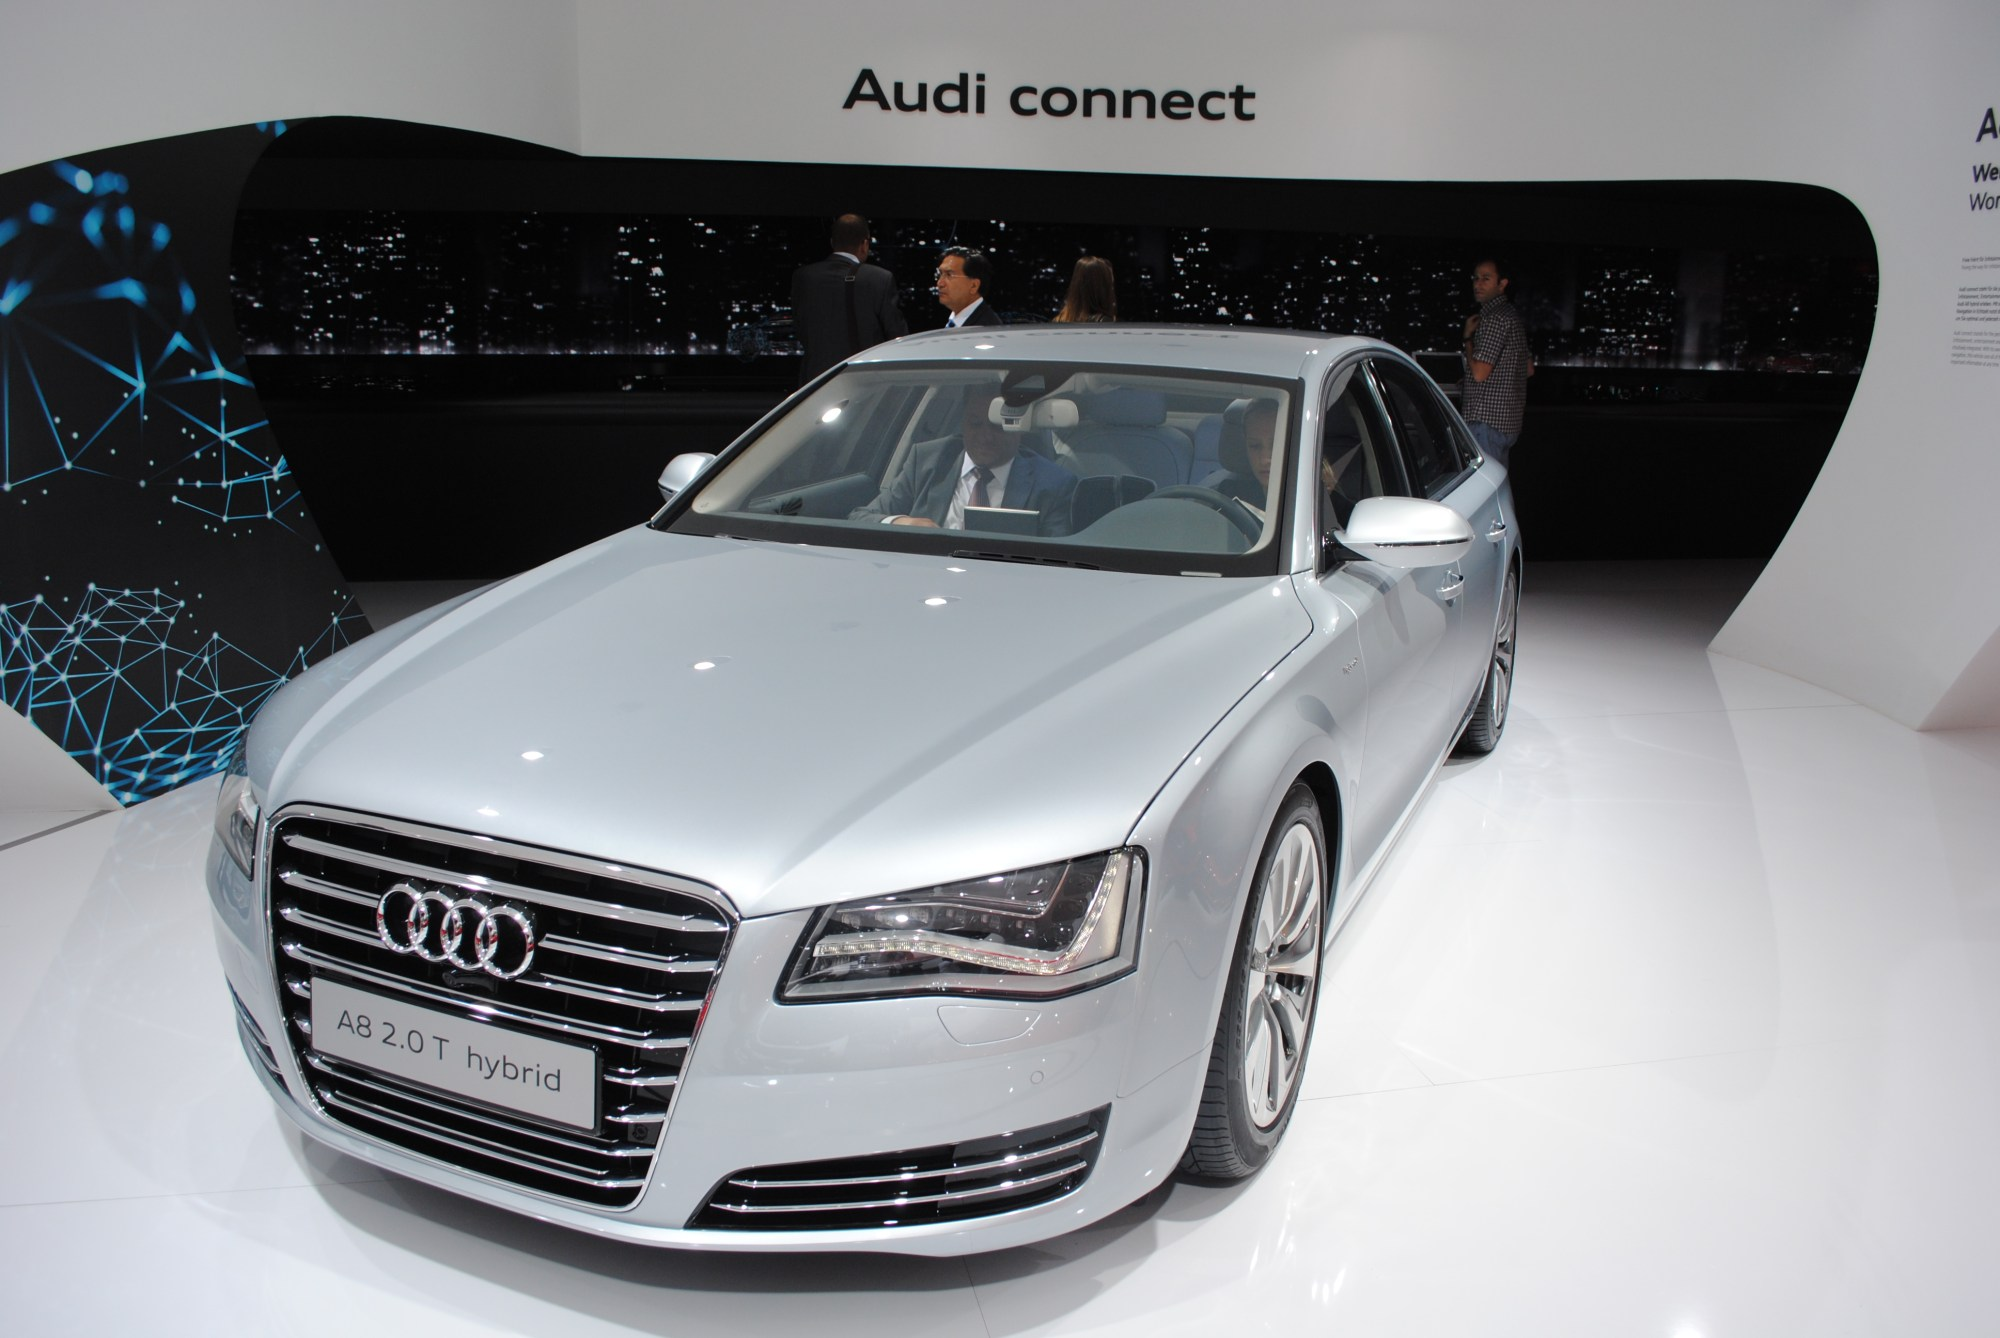 hight resolution of file audi a8 2 0 t hybrid 6147658222 jpg